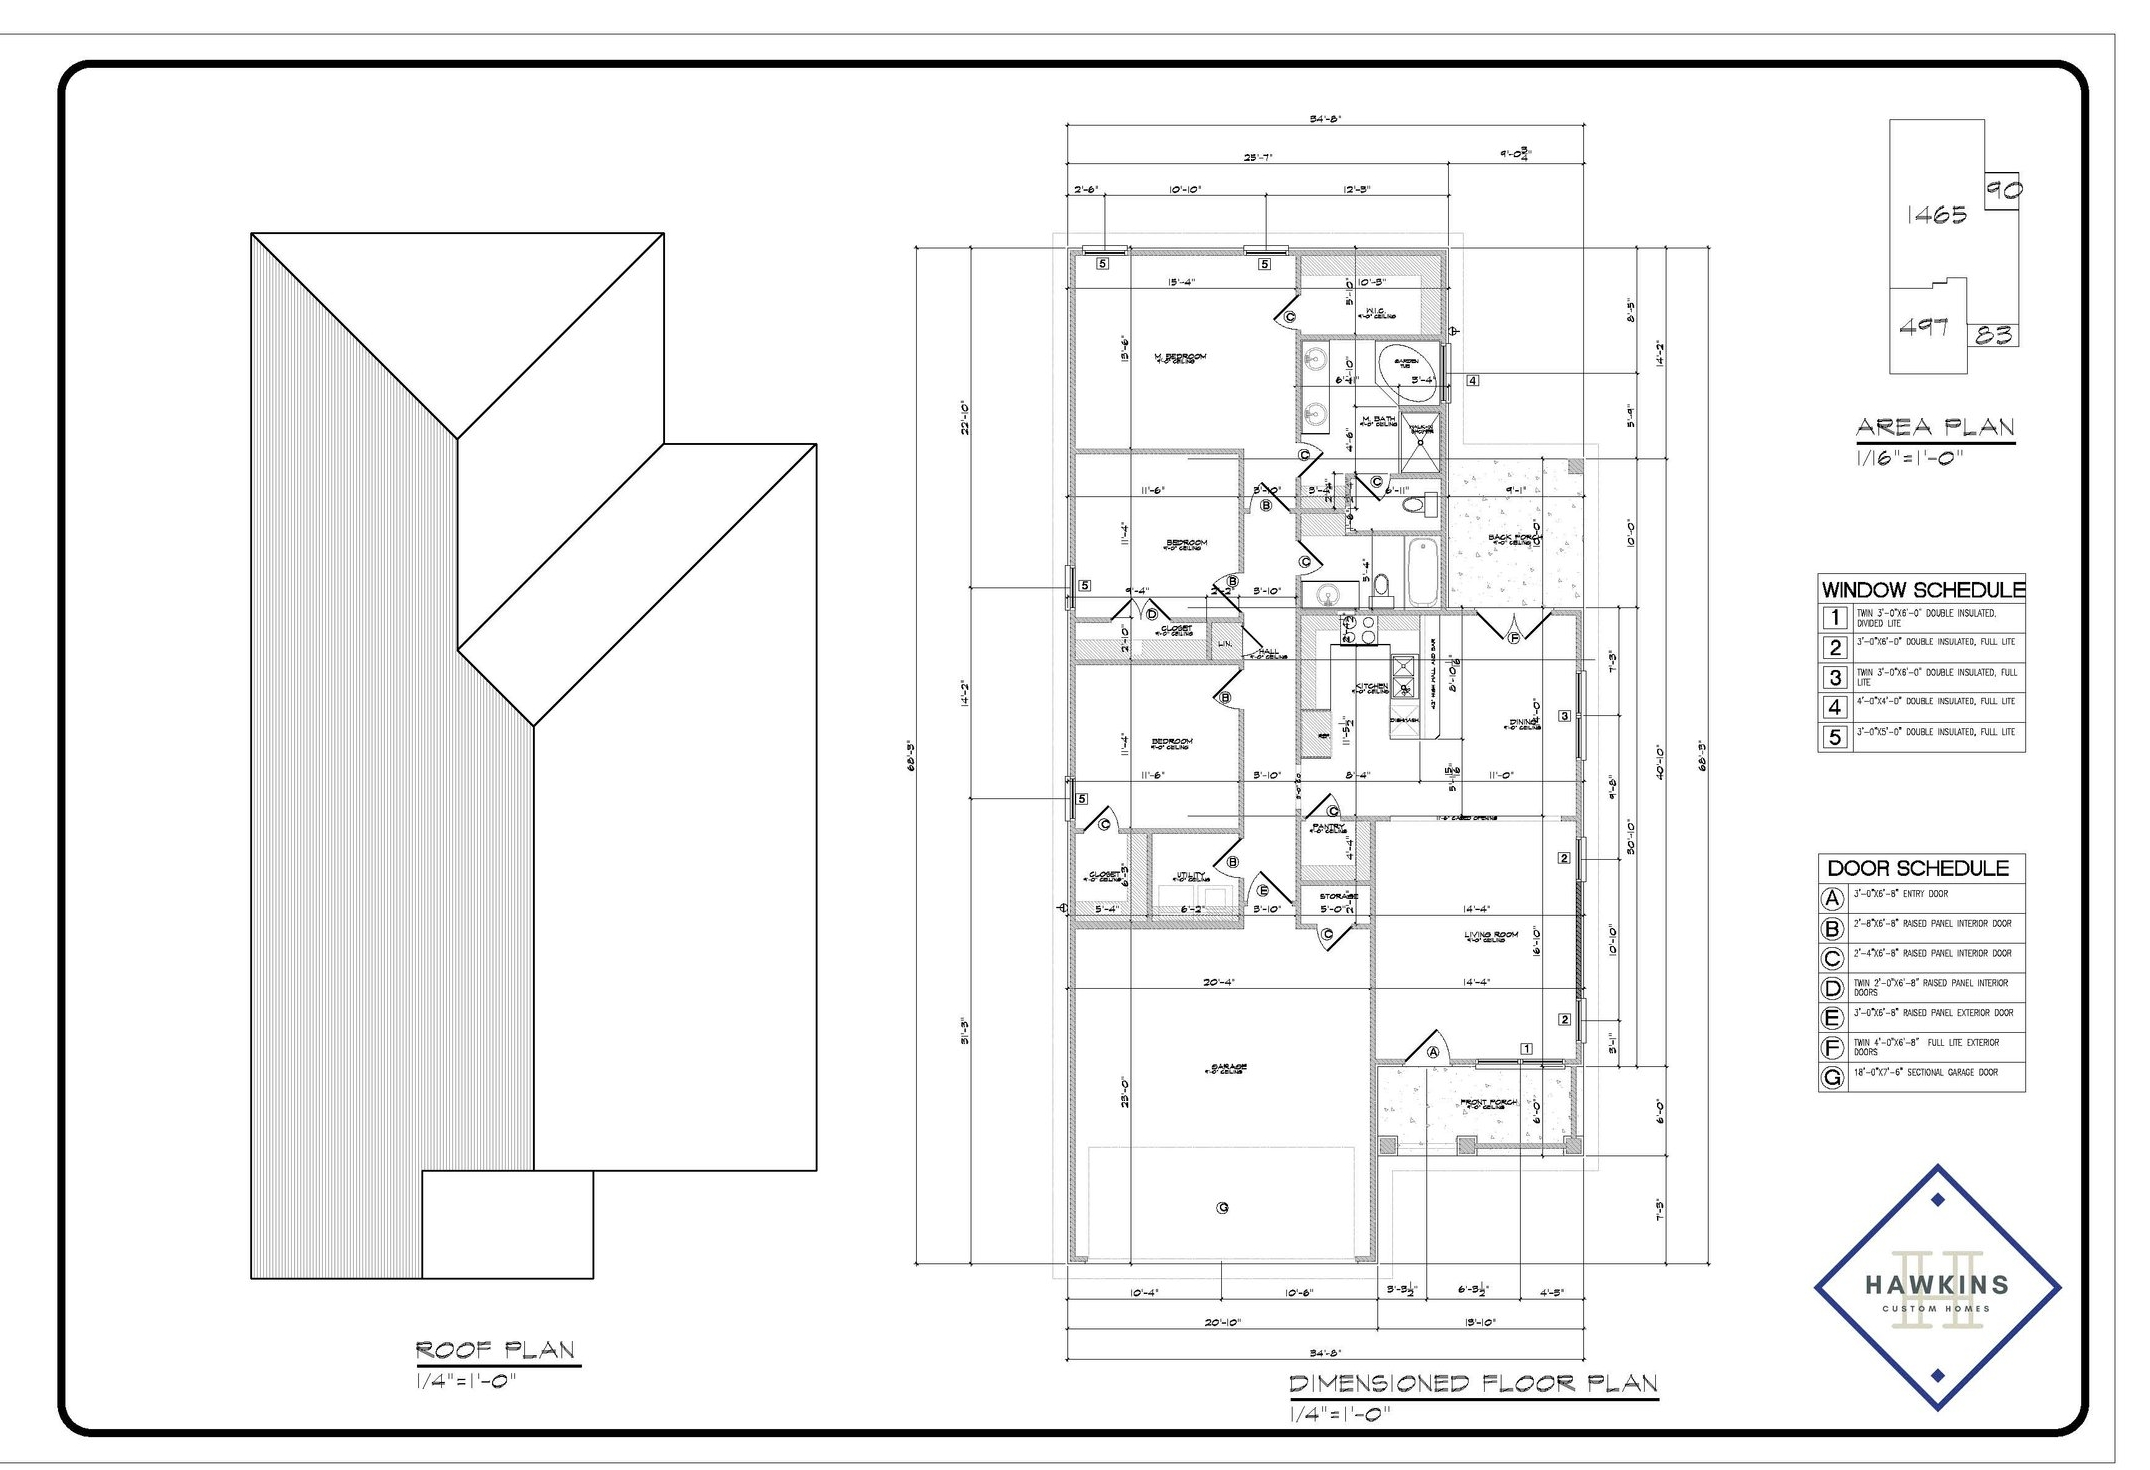 House Plan 1_Page_3.jpg